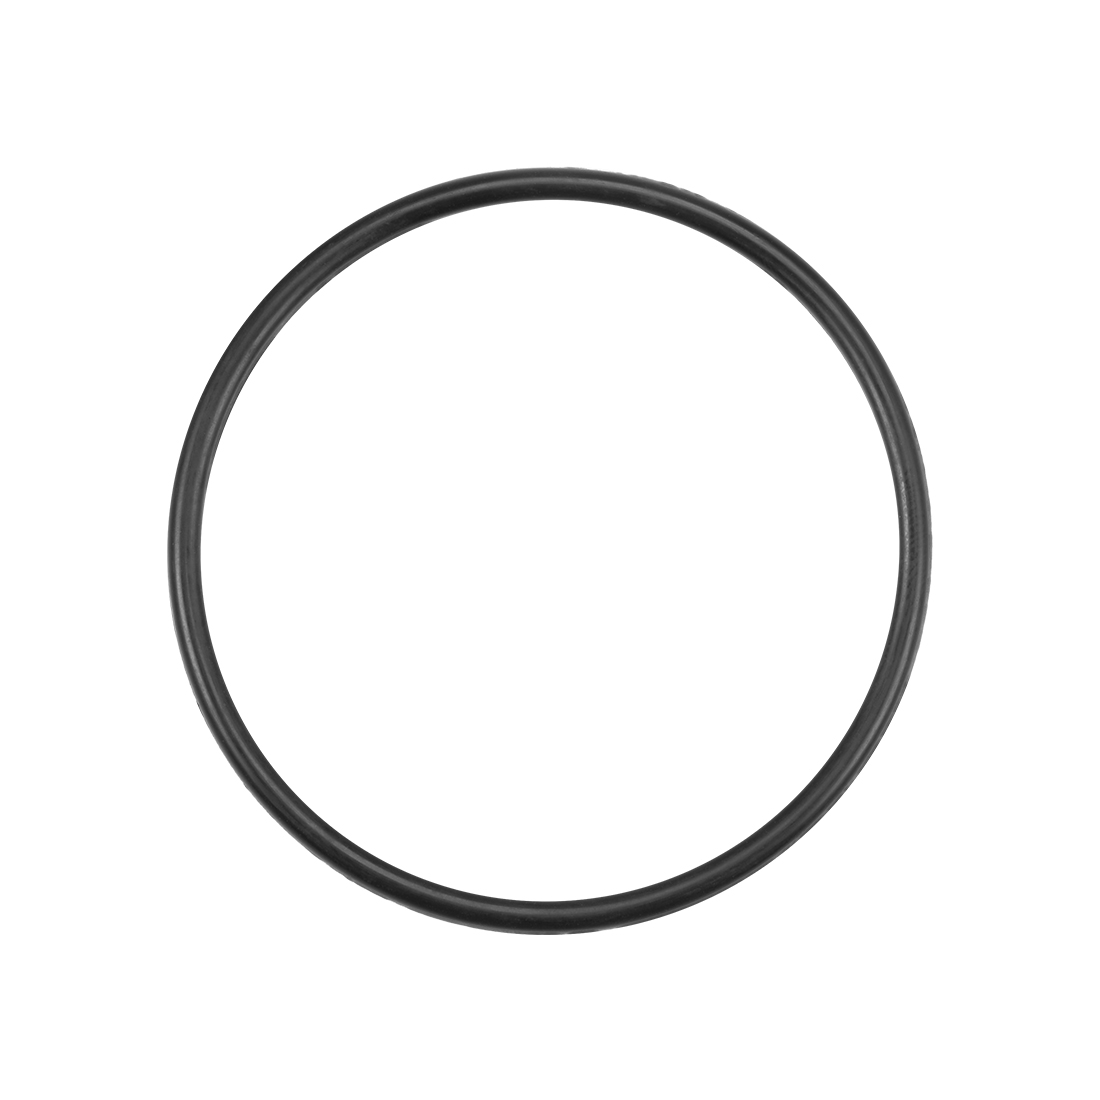 O-Rings Nitrile Rubber 50mm x 55.3mm x 2.65mm Round Seal Gasket